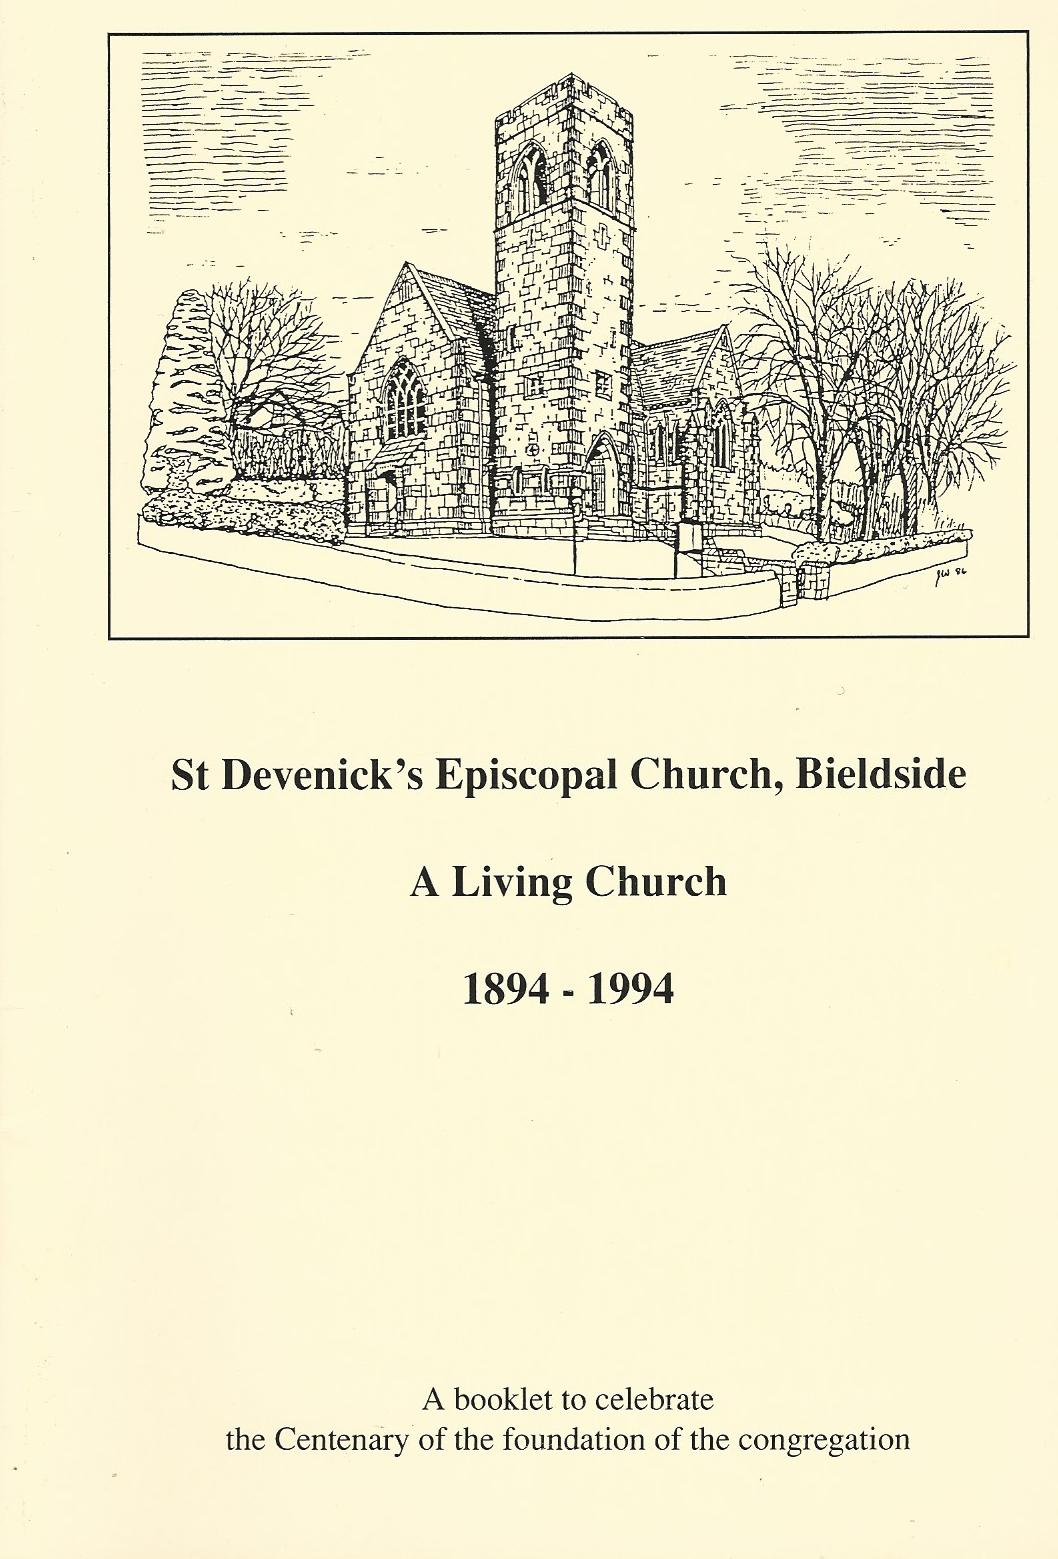 Image for St.Devenick's Episcopal Church, Bieldside: A Living Church 1894 - 1994.